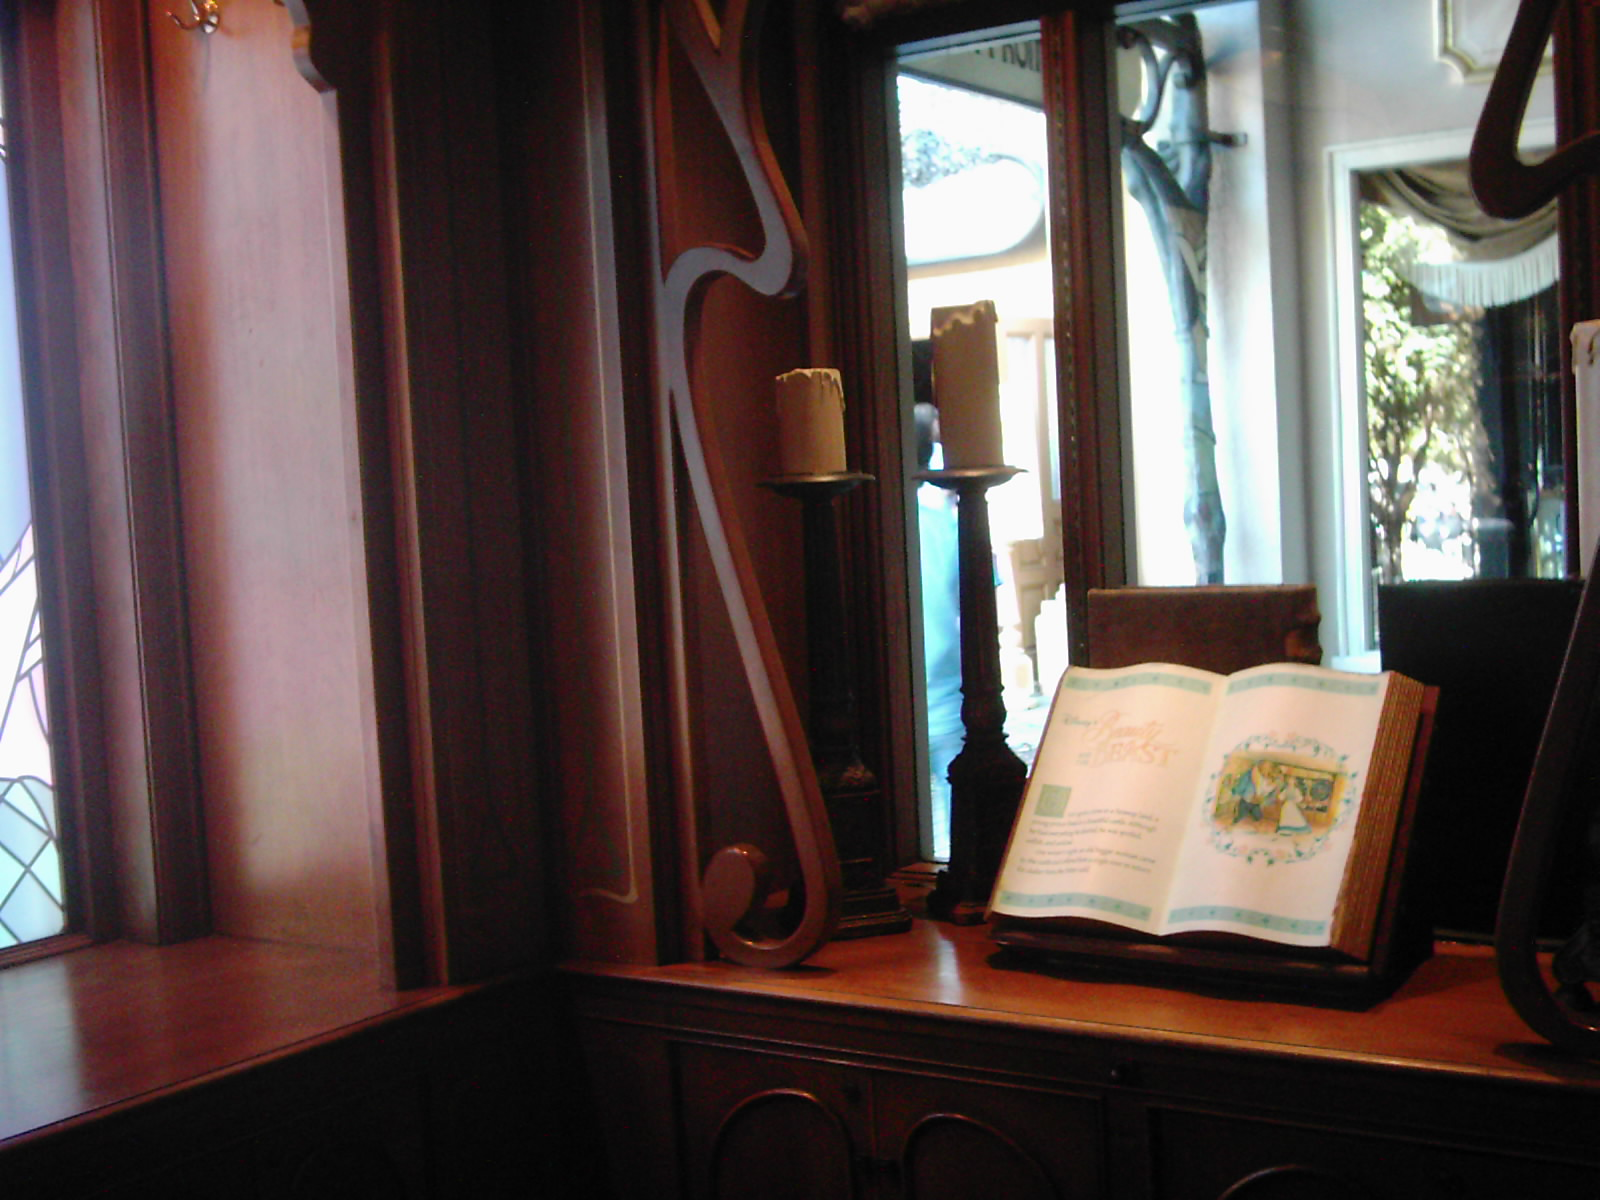 Beauty and the Beast Storybook in France Pavilion, Epcot - author's collection